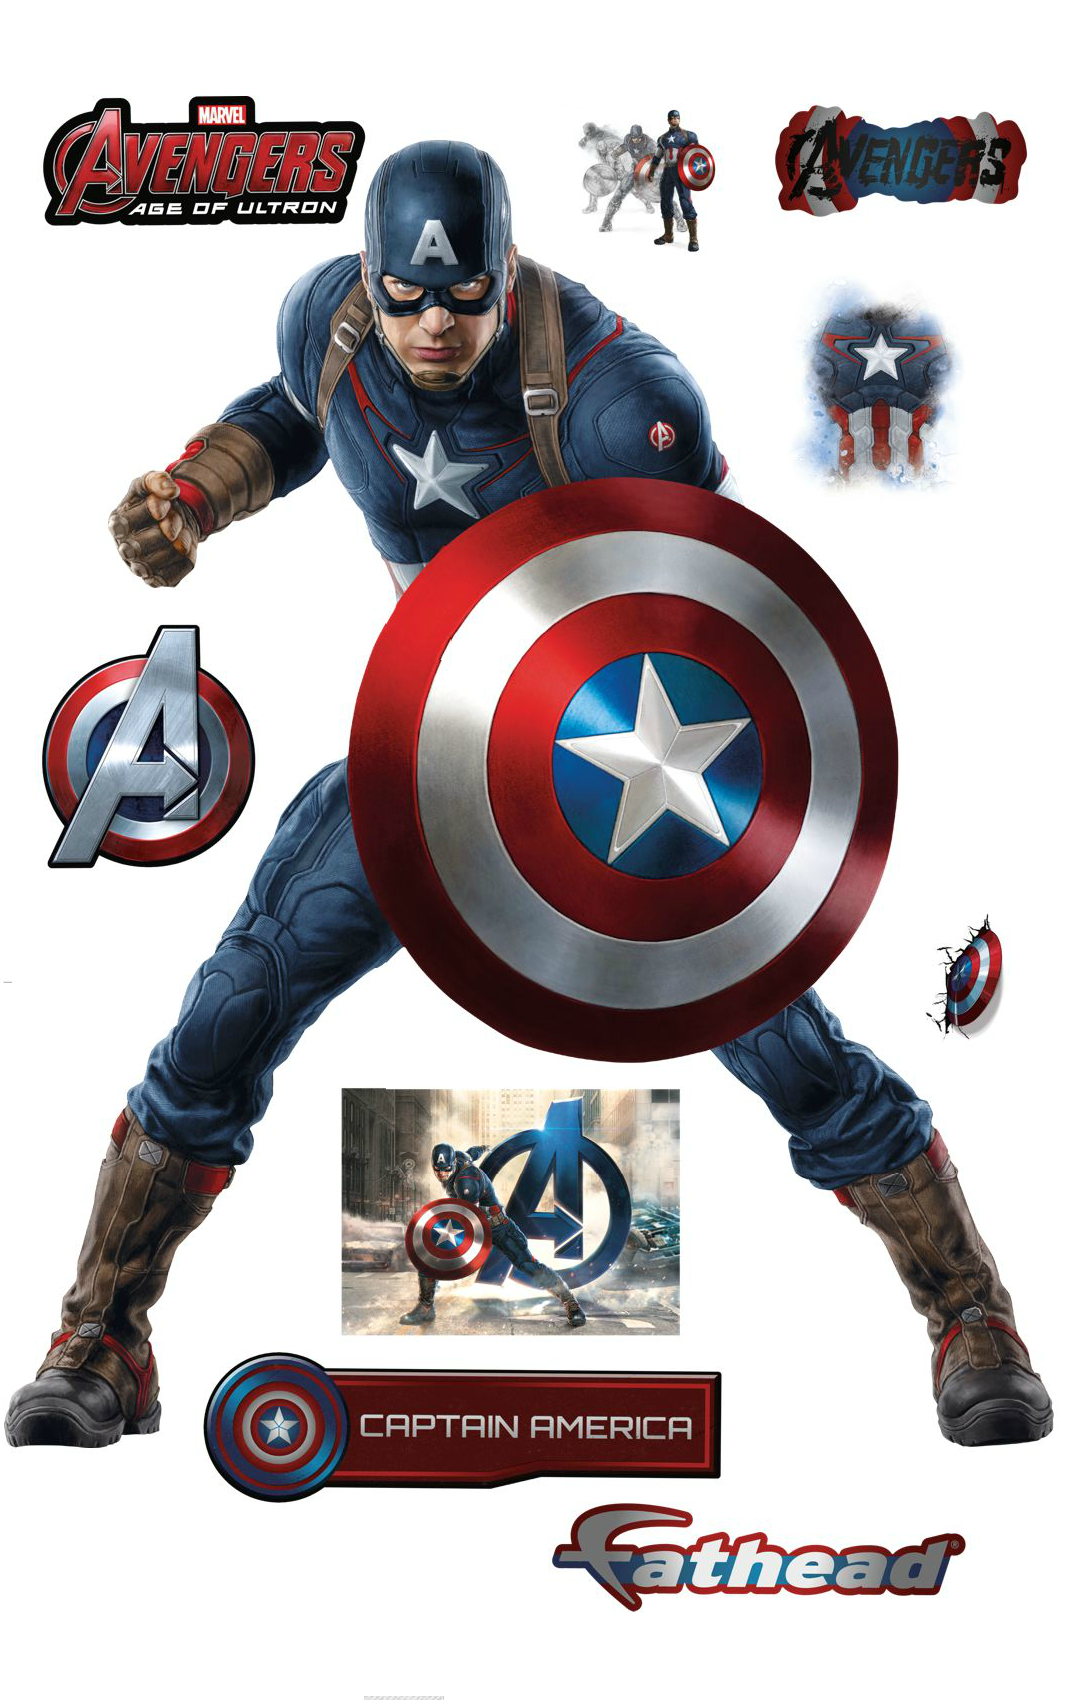 Fathead Wall Art some awesome new avengers: age of ultron promo art from fathead